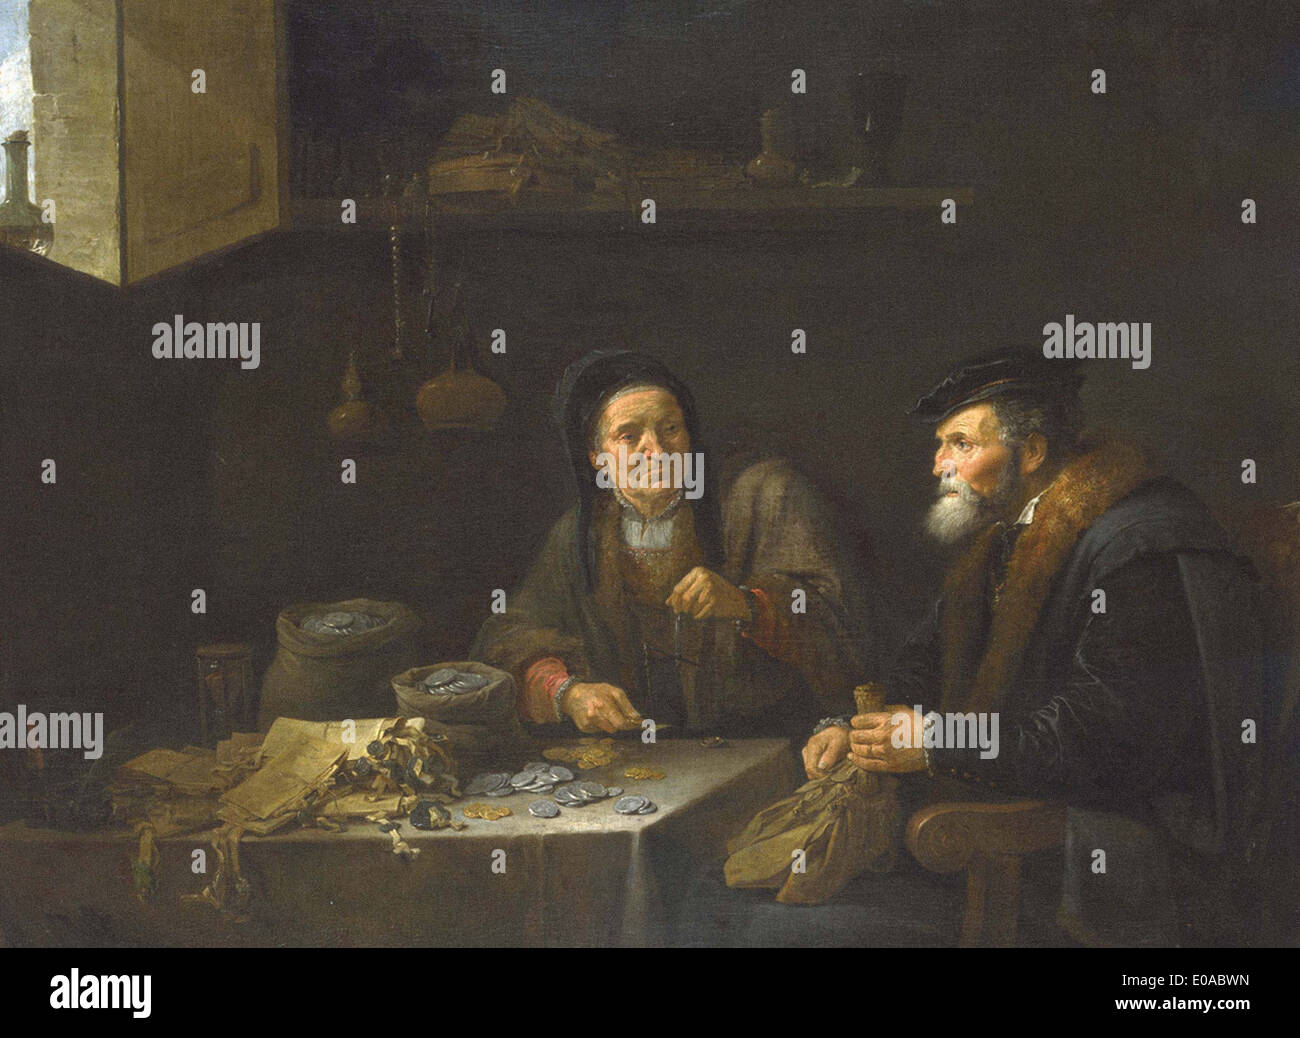 David Teniers the Younger The Covetous Man - Stock Image